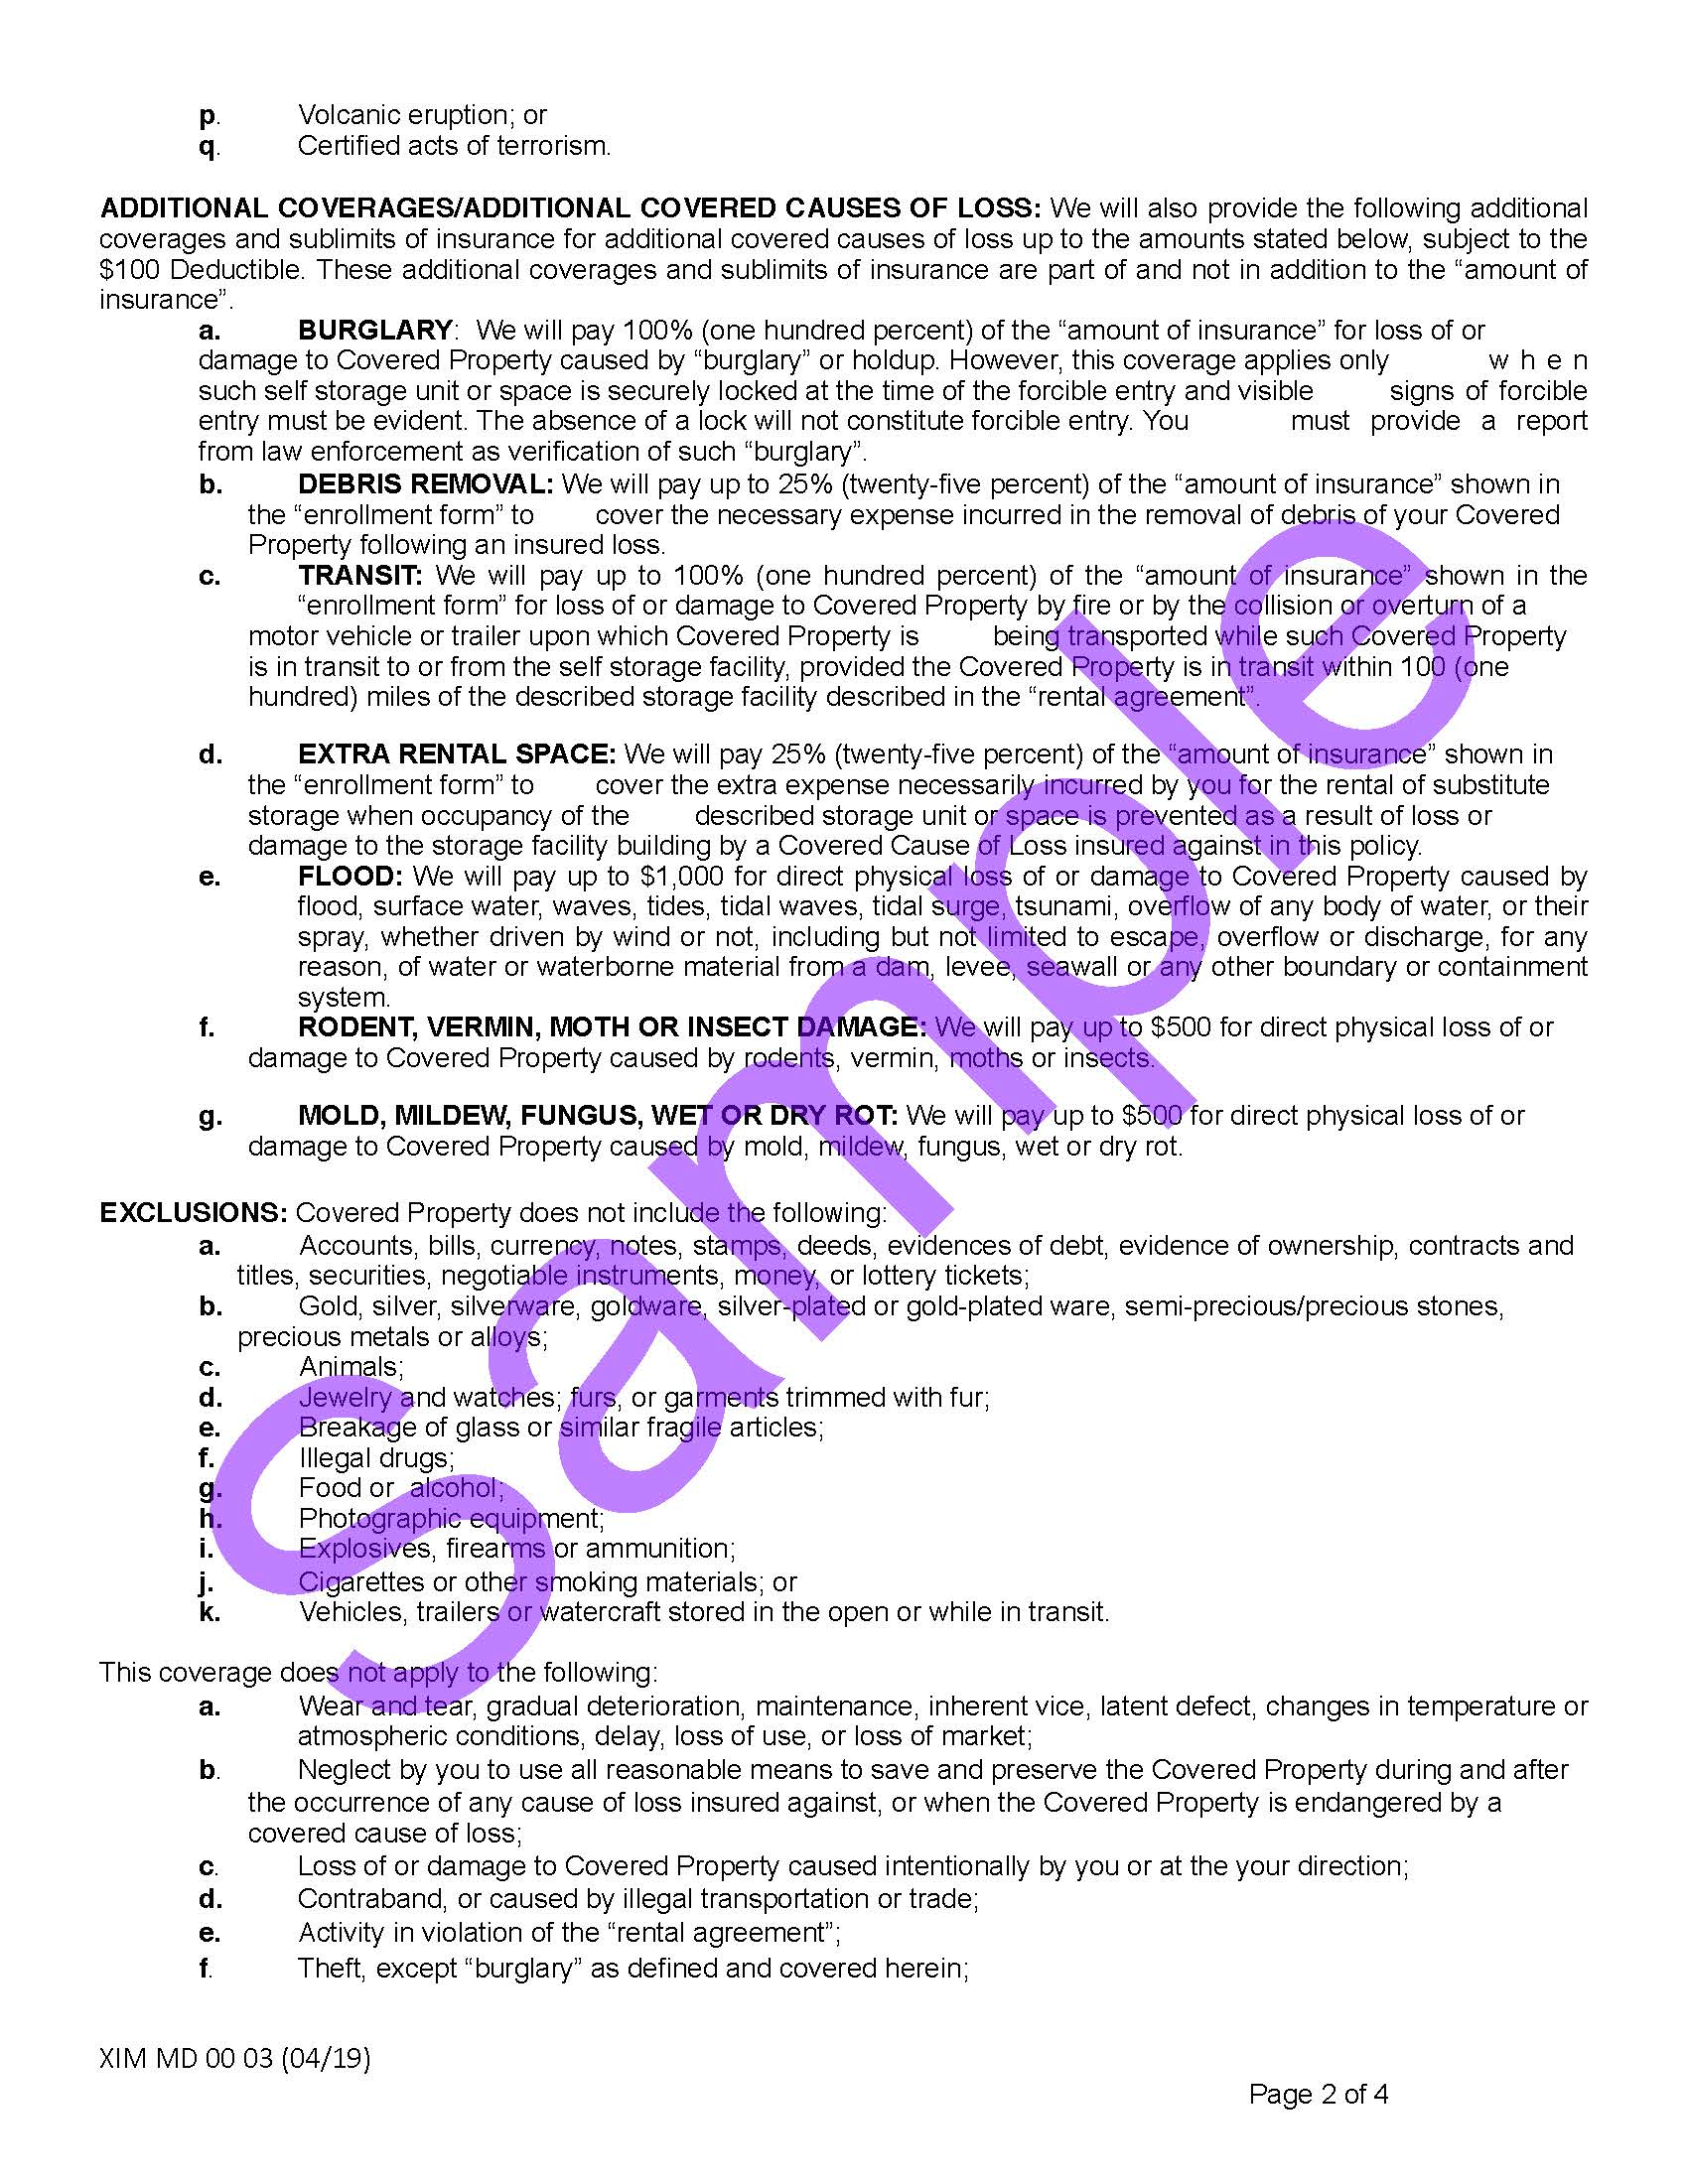 XIM MD 00 03 04 19 Maryland Certificate of InsuranceSample_Page_2.jpg